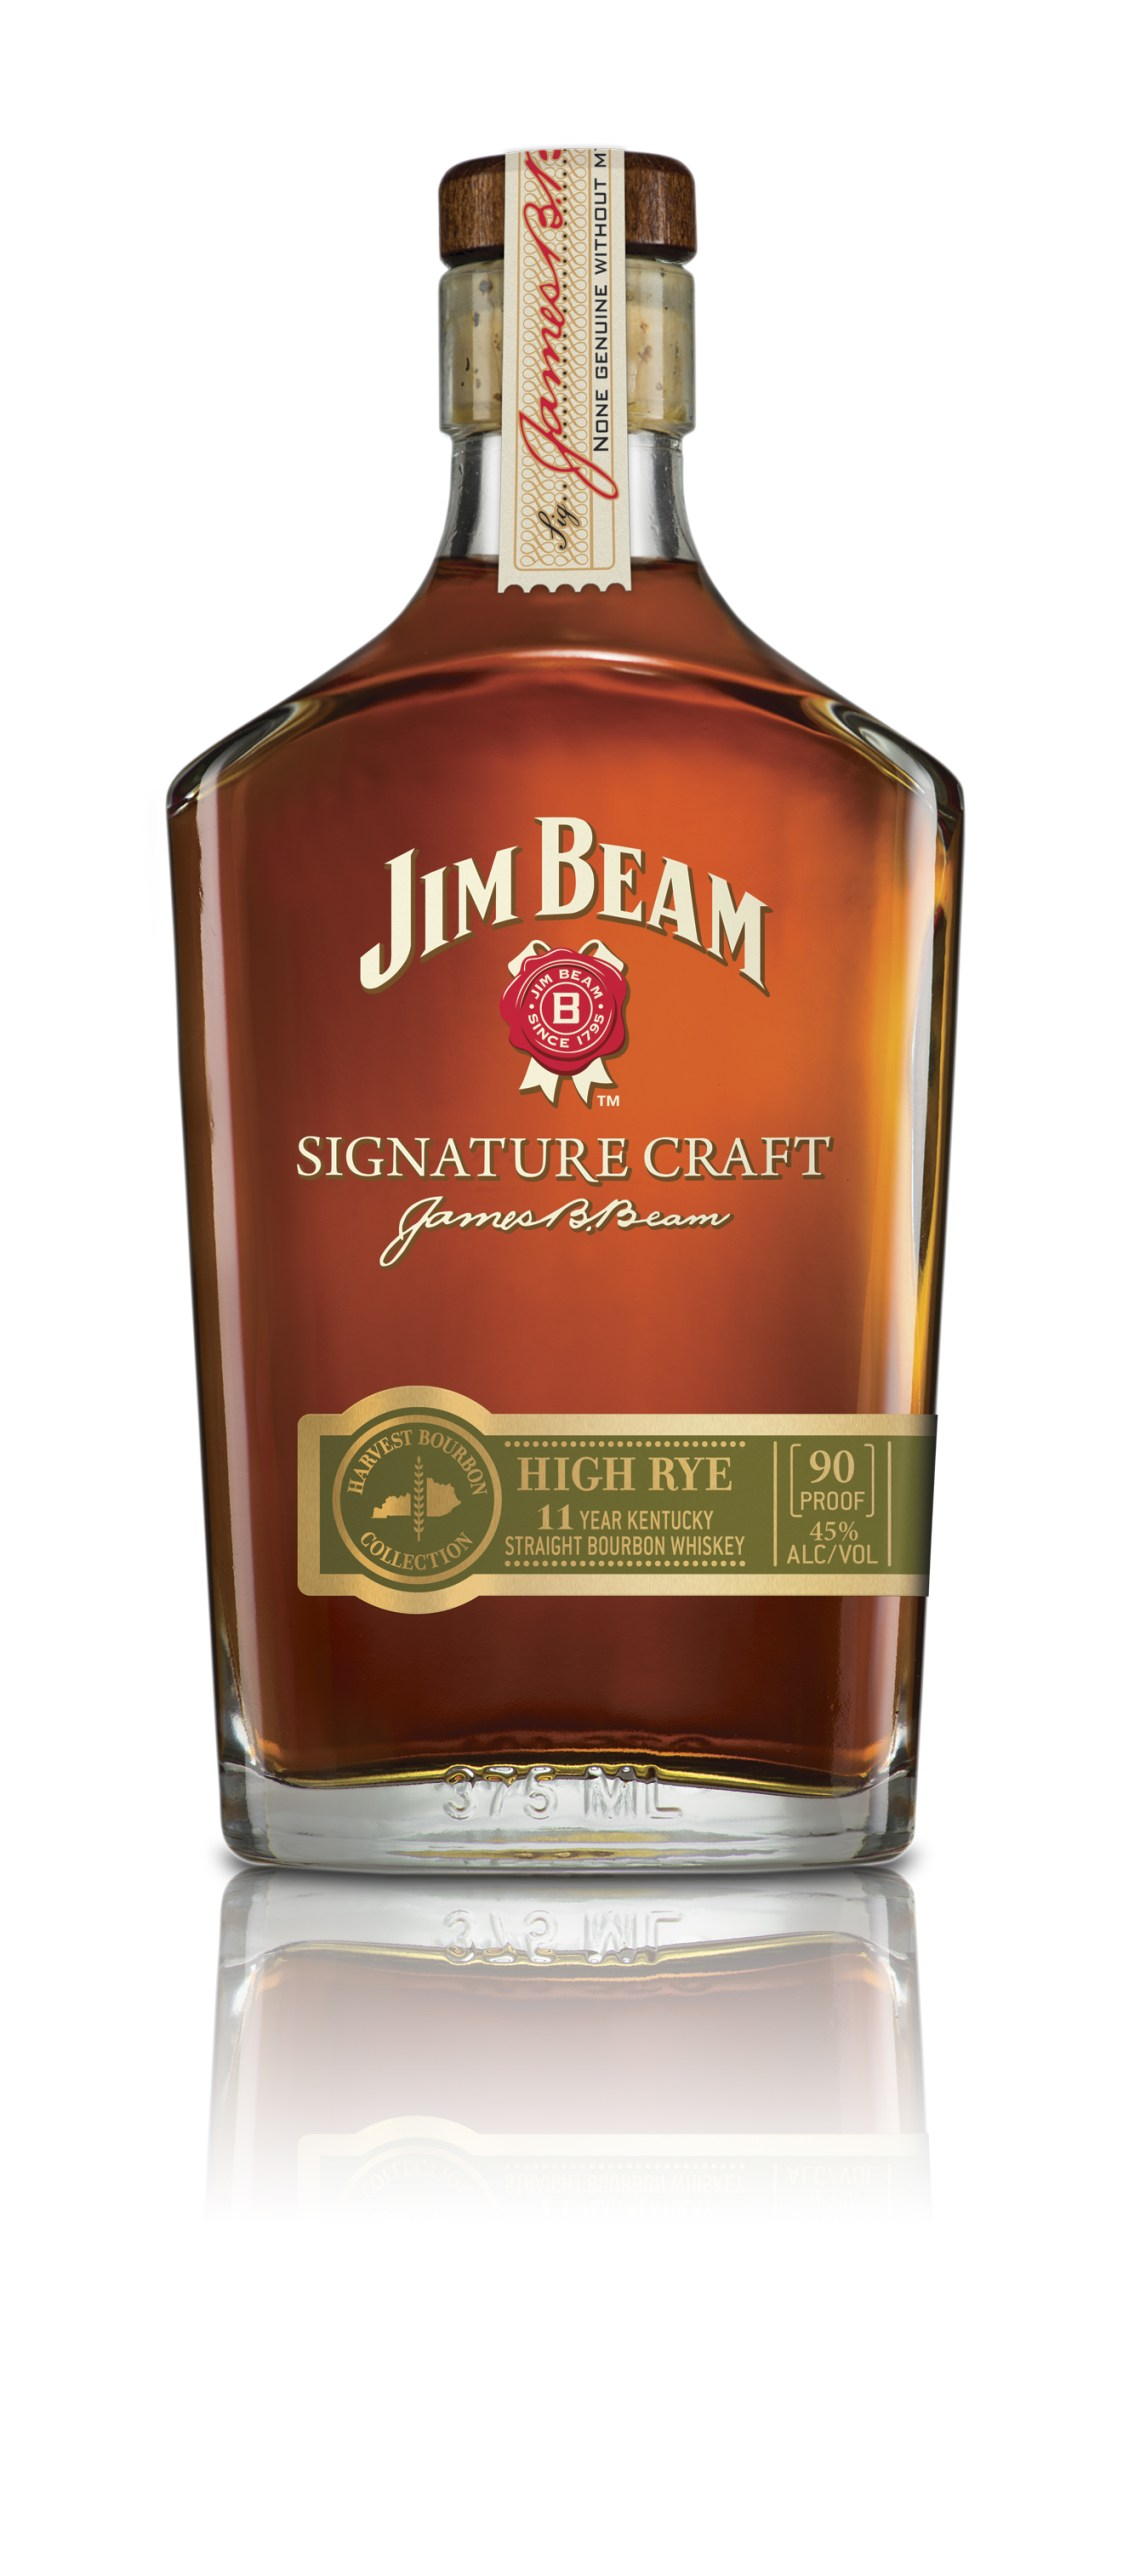 Jim Beam Signature Craft Harvest Bourbon Collection – High Rye